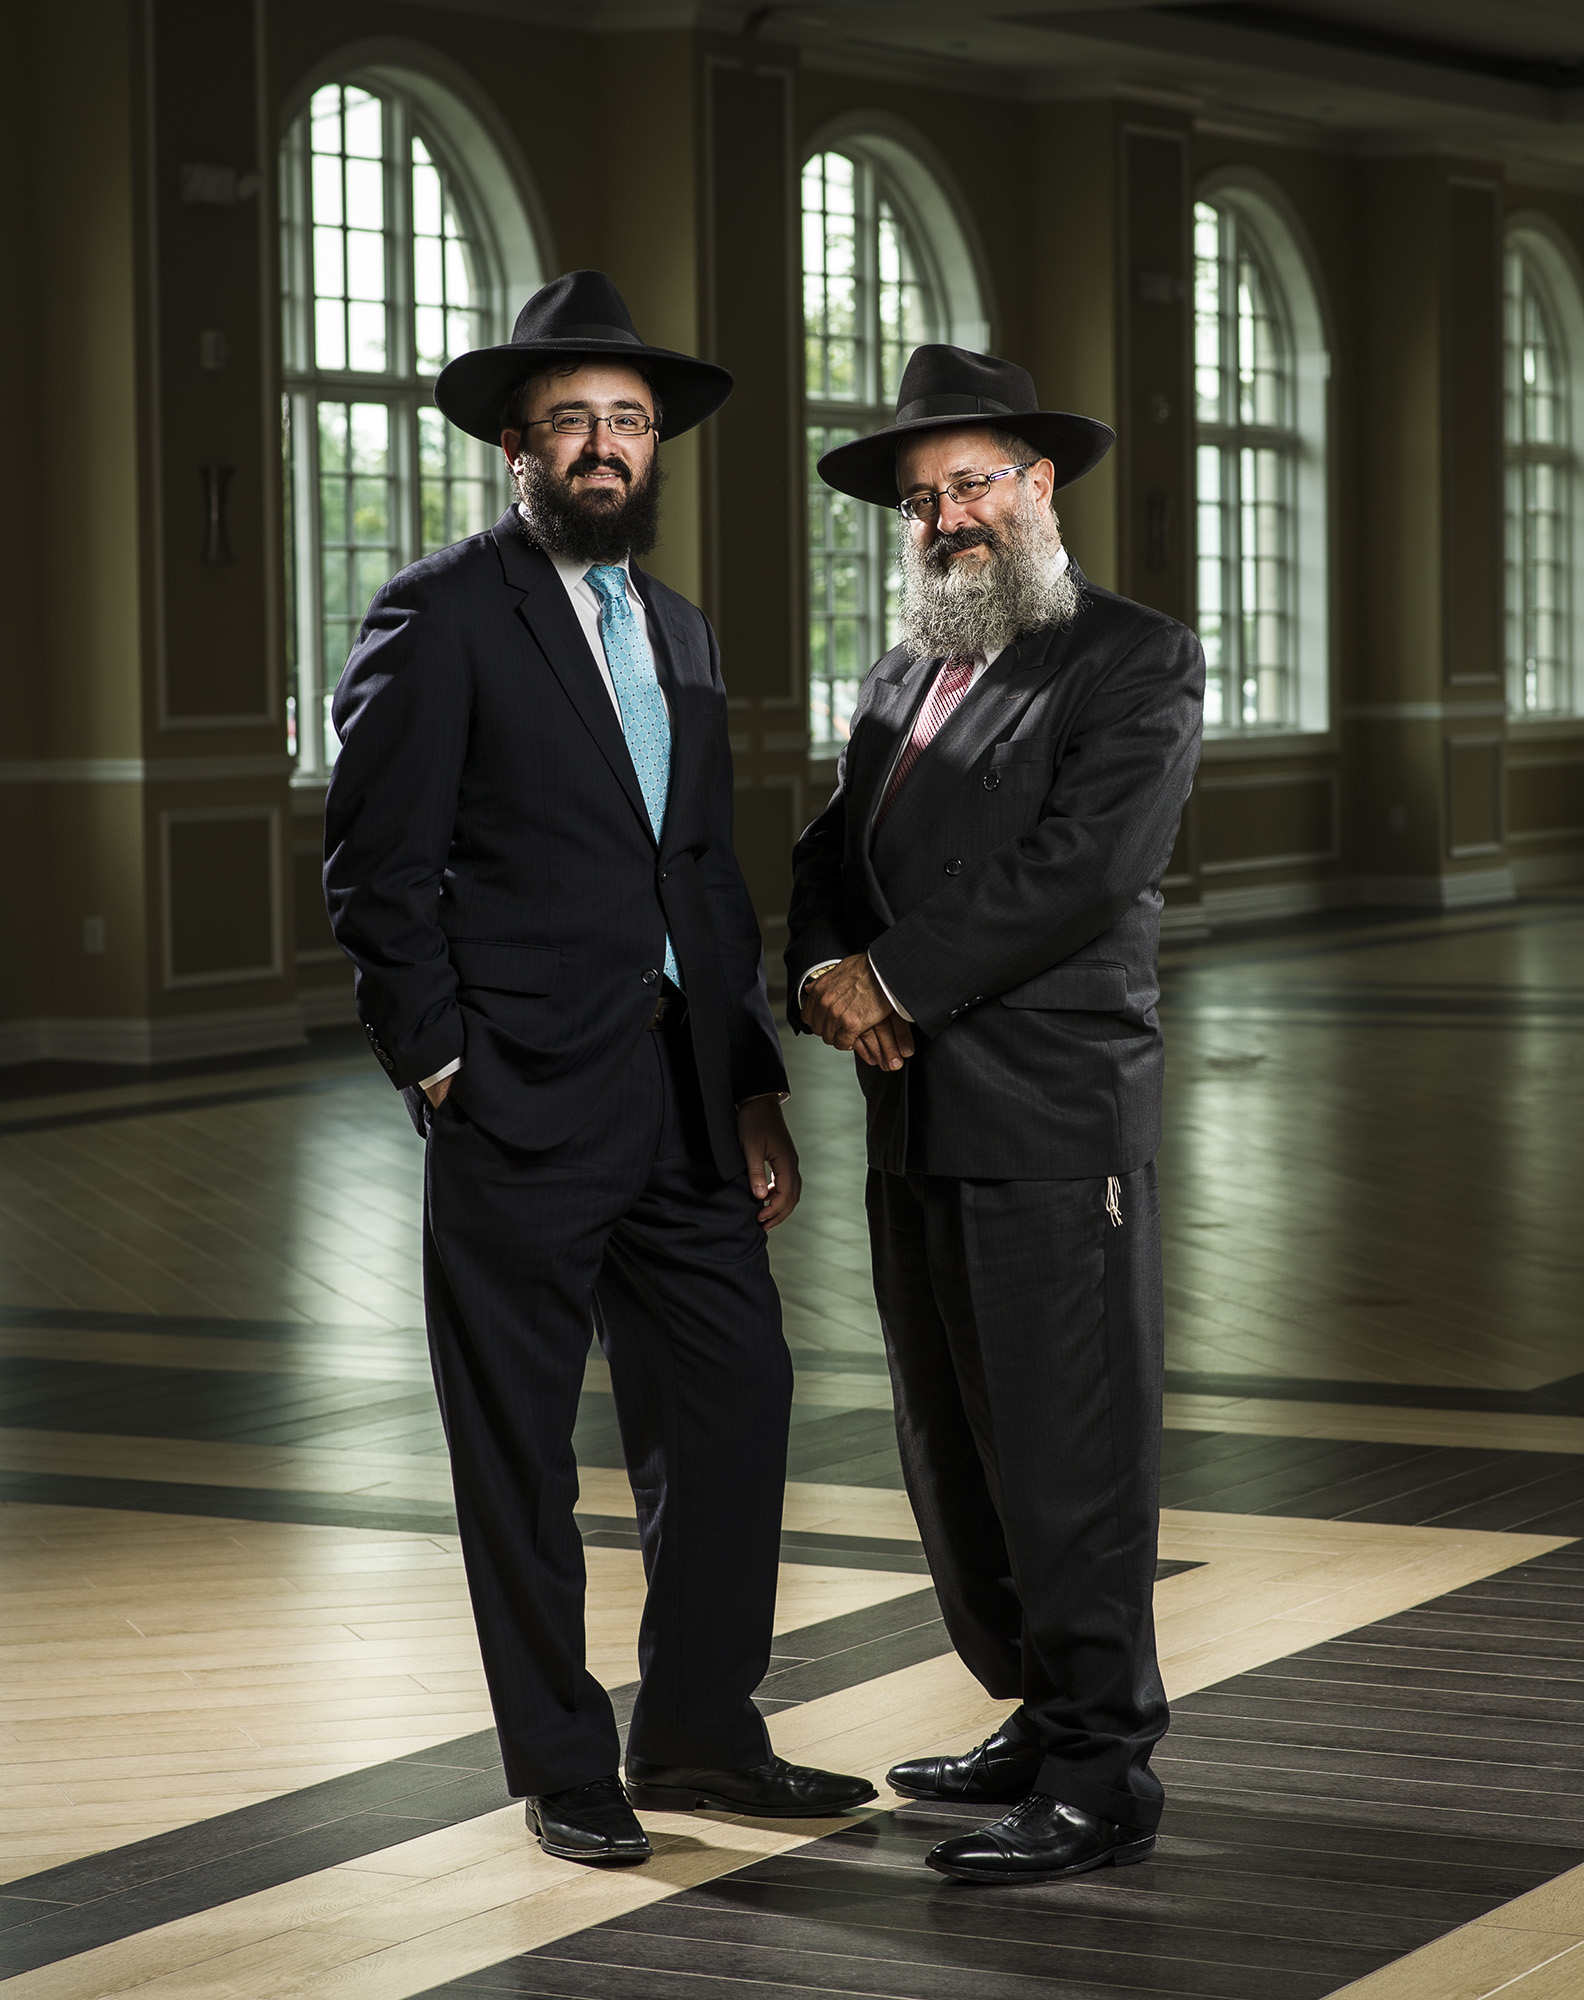 Mendy & Yosef Carlebach operate Chabad House, the largest on campus Jewish Center in the world.  Photographed for Saint Peter's University Hospital